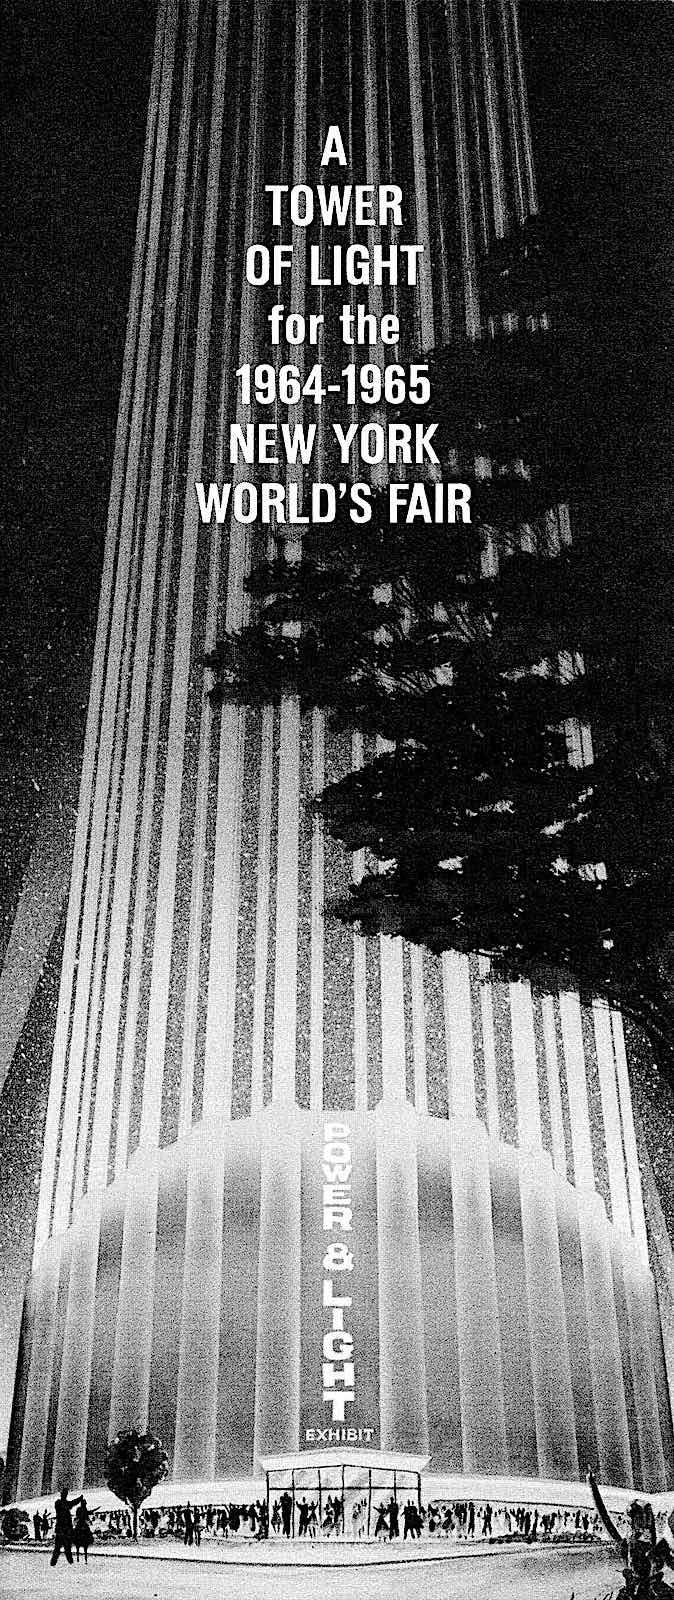 the 1964 New York Worlds Fair Tower of Light, an illustration of the Power and Light Exhibit